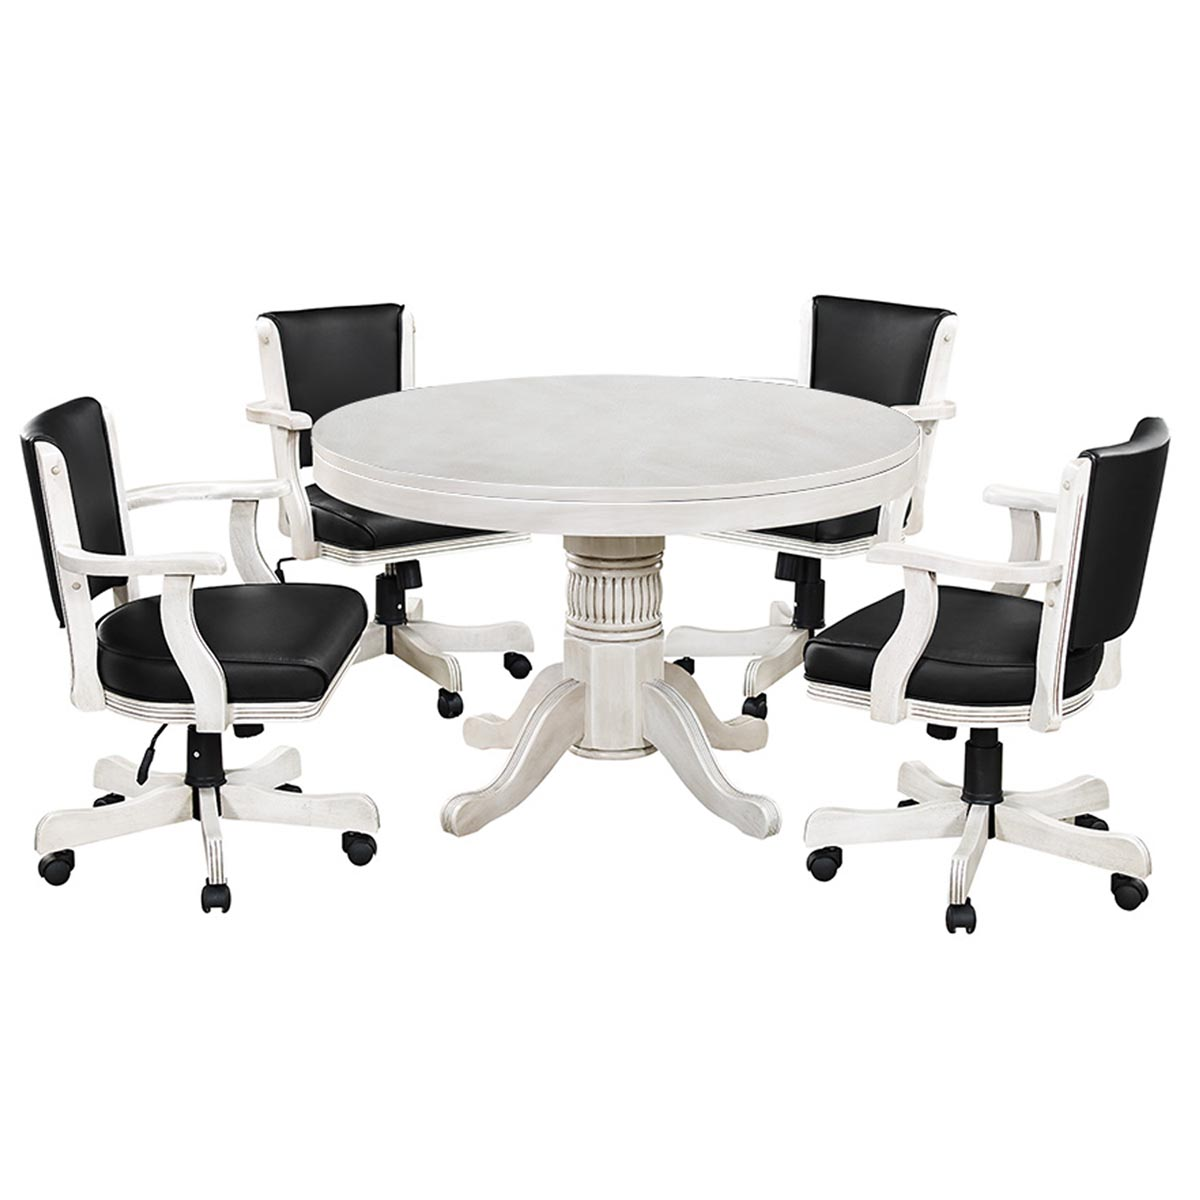 Antique White Finish with Optional Swivel Chairs